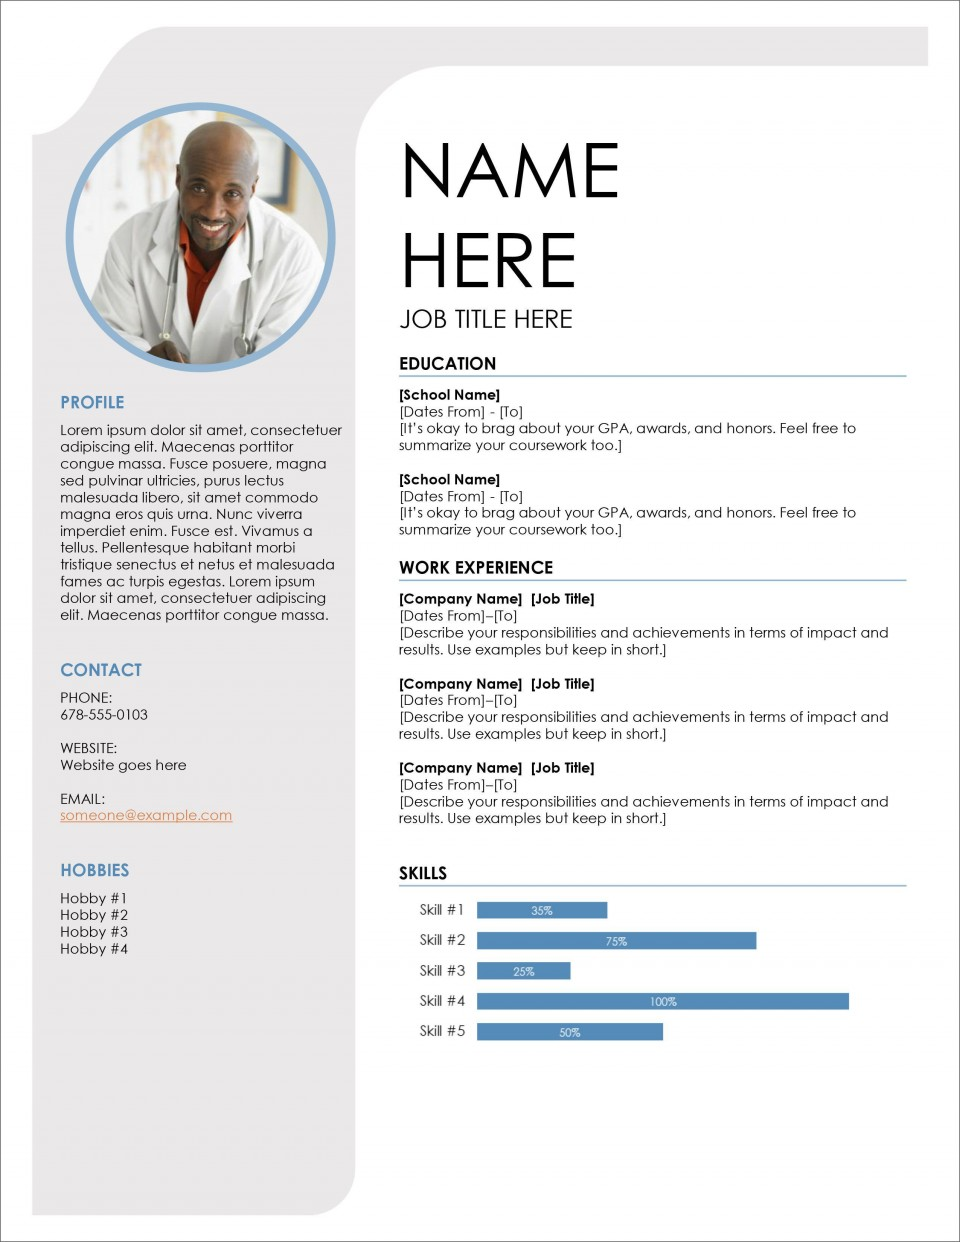 005 Incredible Download Free Resume Template Word 2018 Inspiration 960